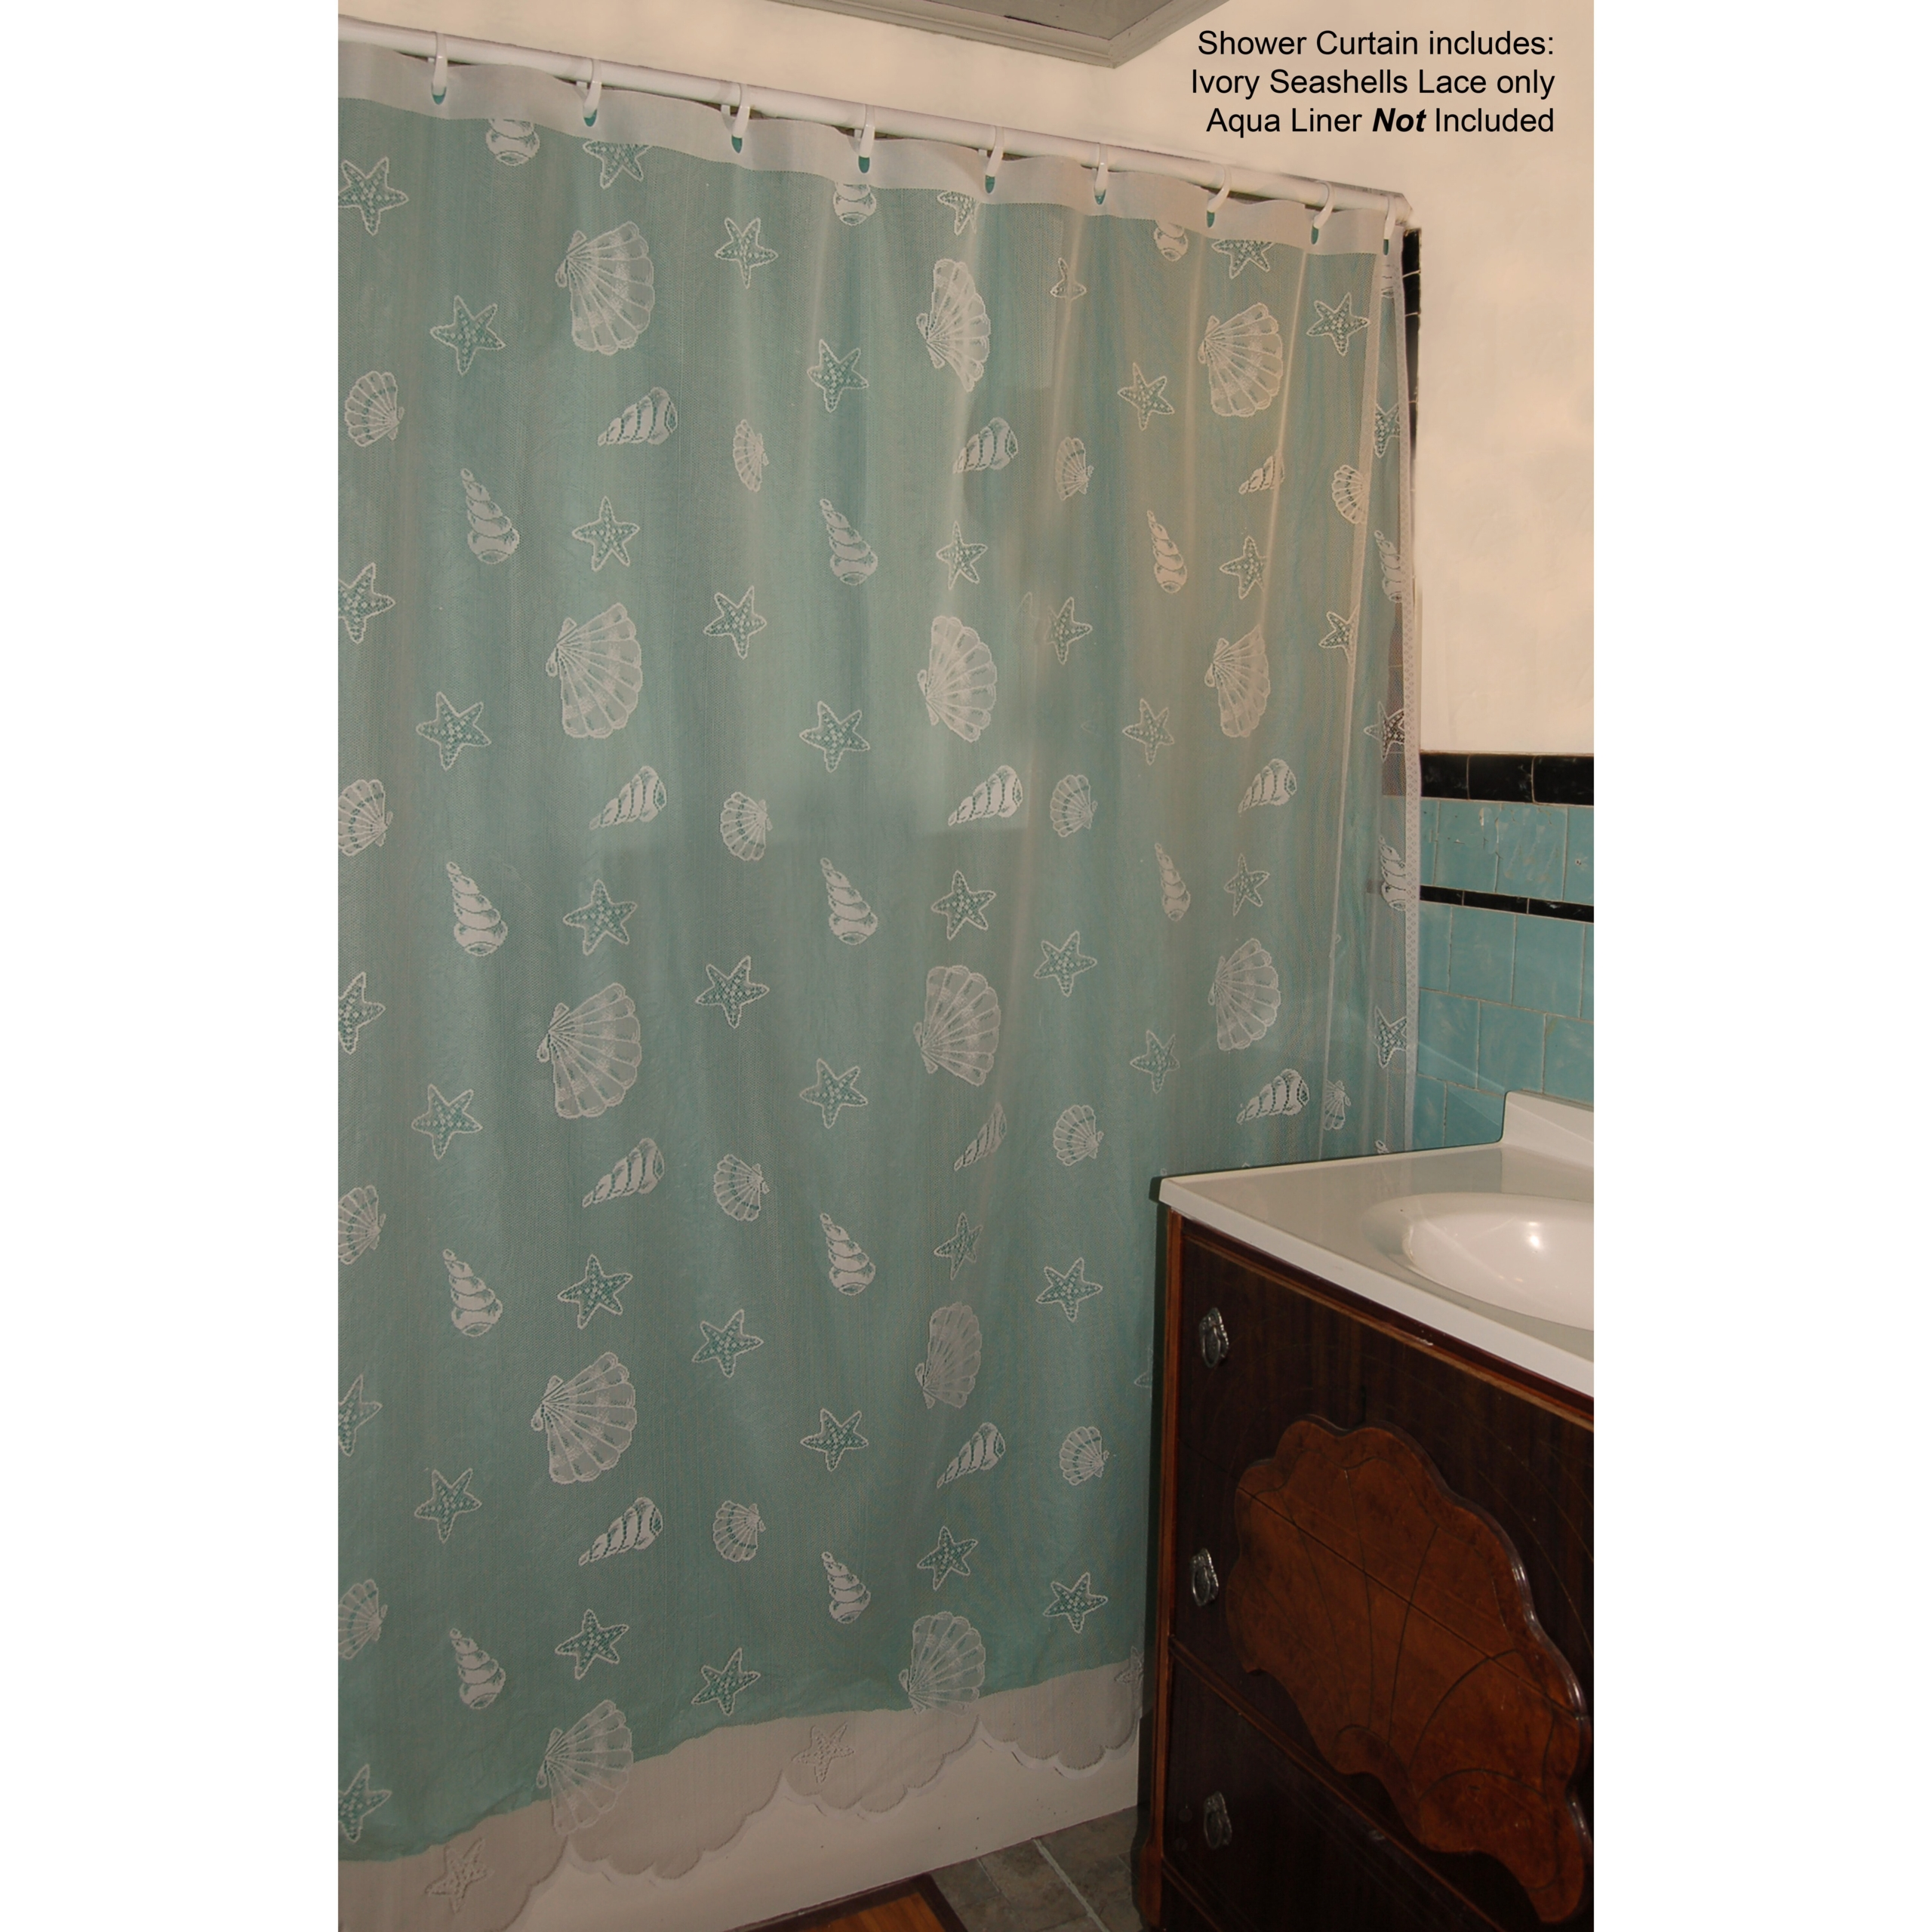 Seashell Lace Shower Curtain